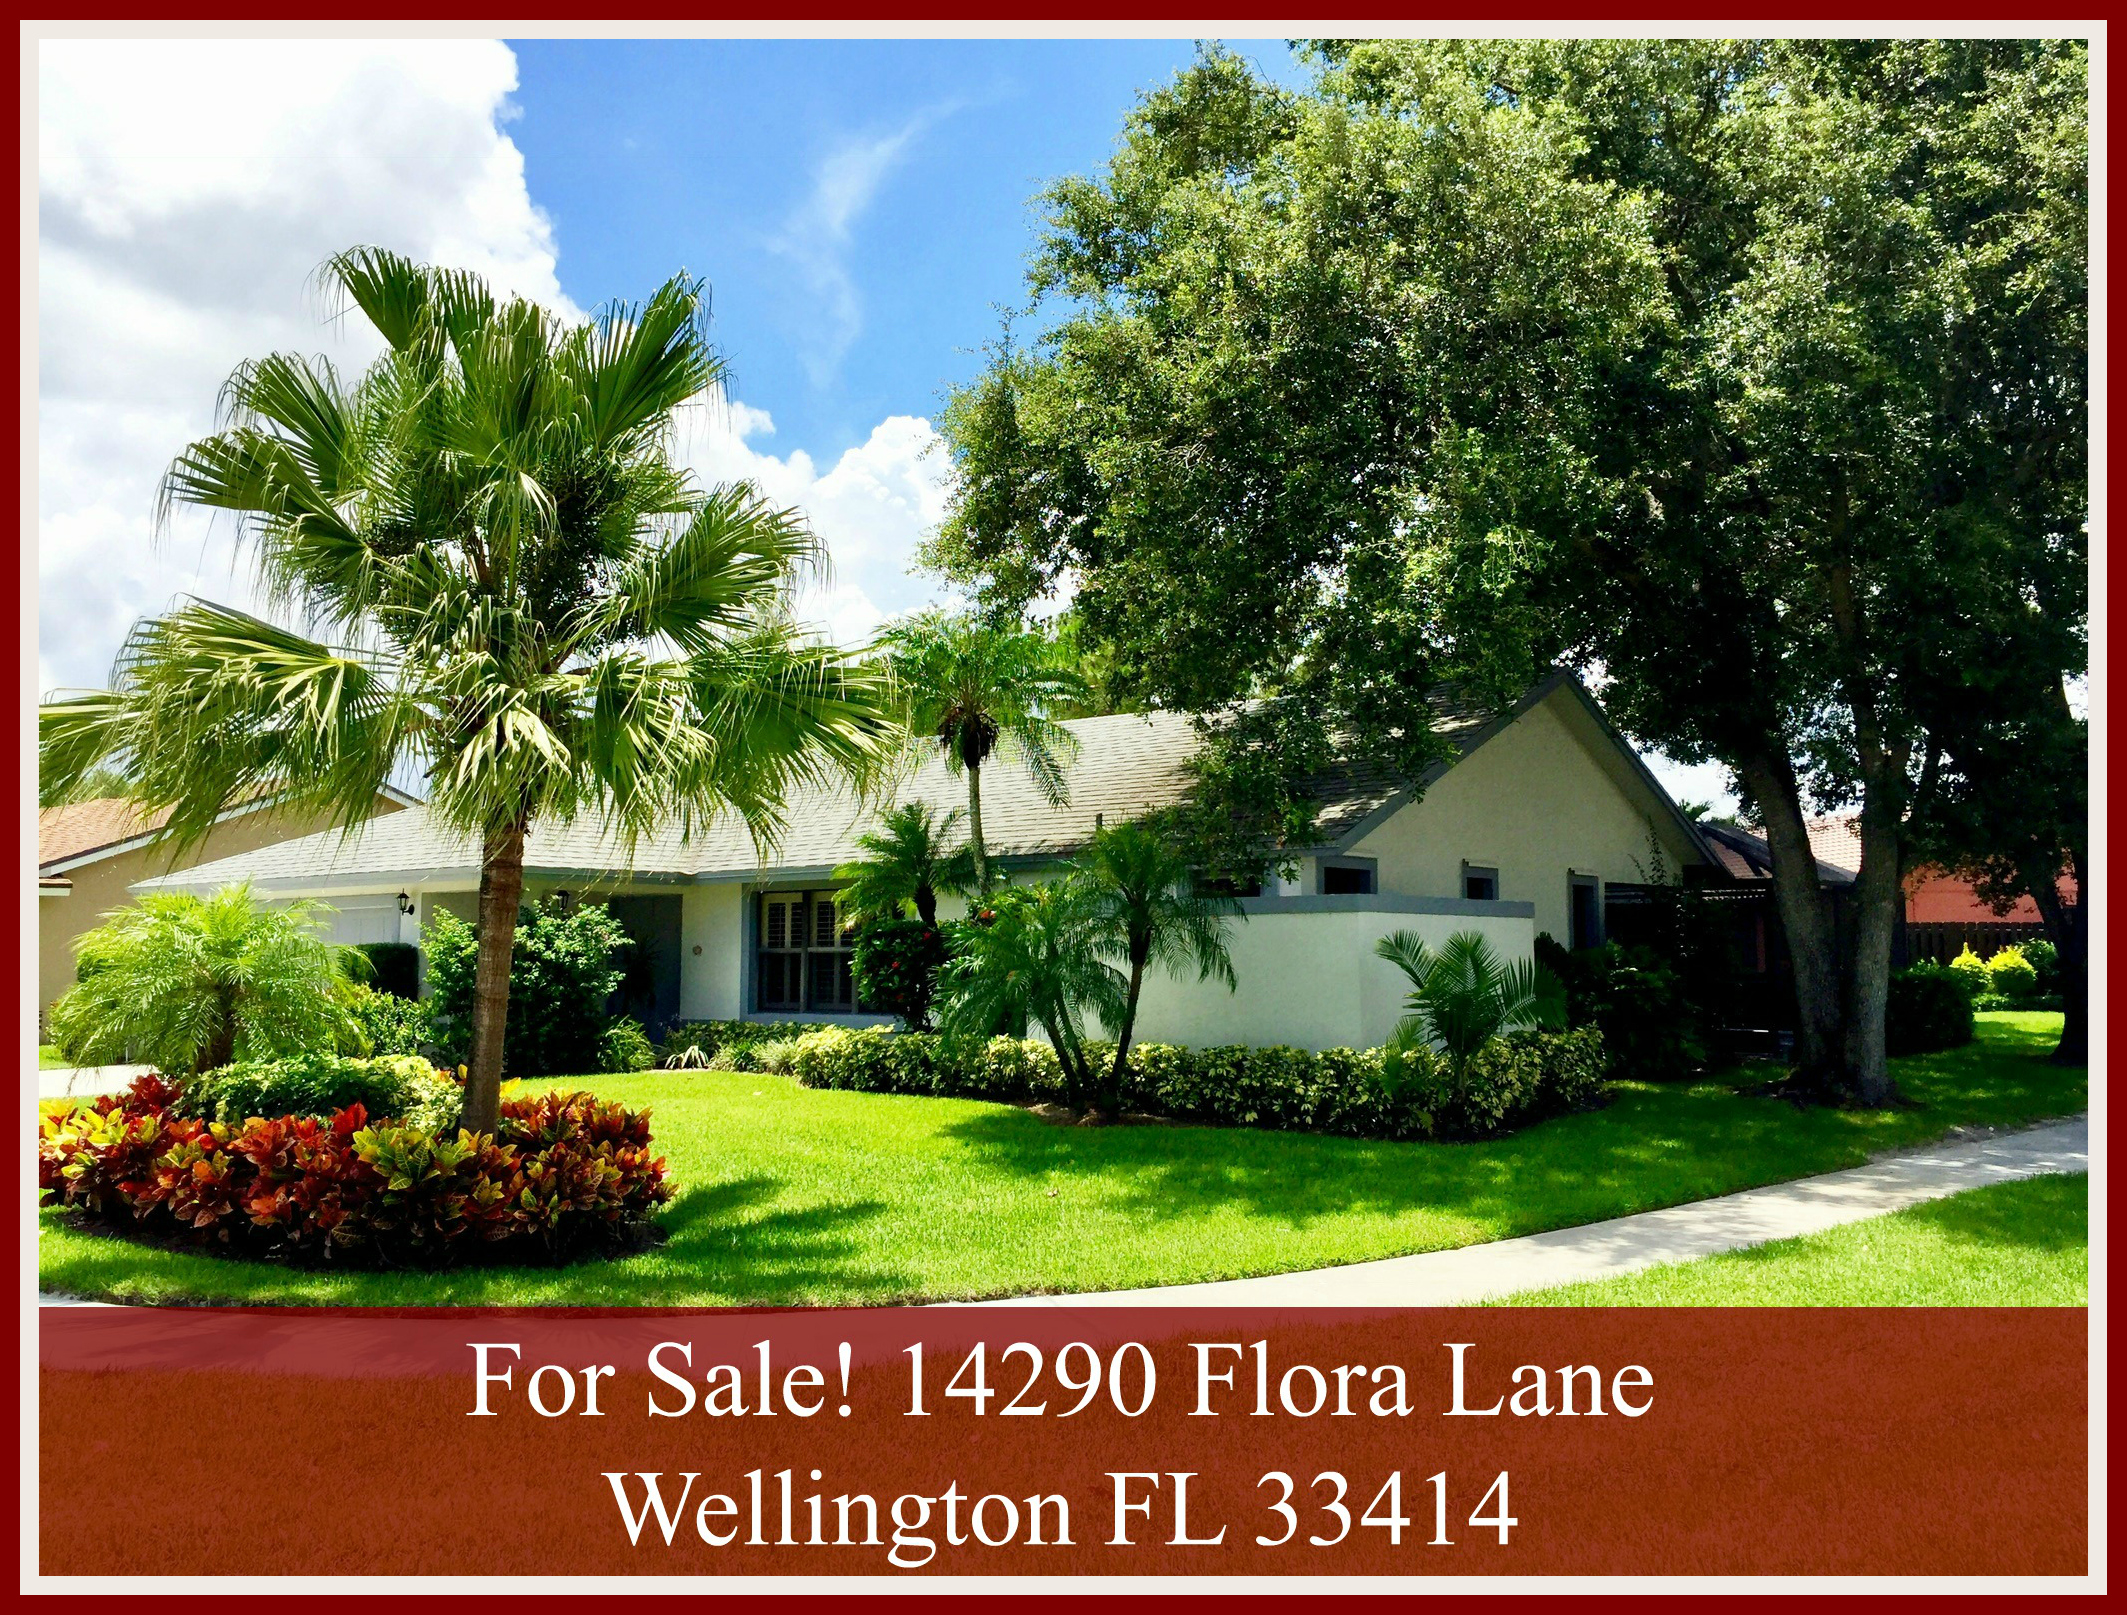 Wellington FL Sugar Pond Manor Home For Sale - This home sits on a corner lot and has been beautifully landscaped.